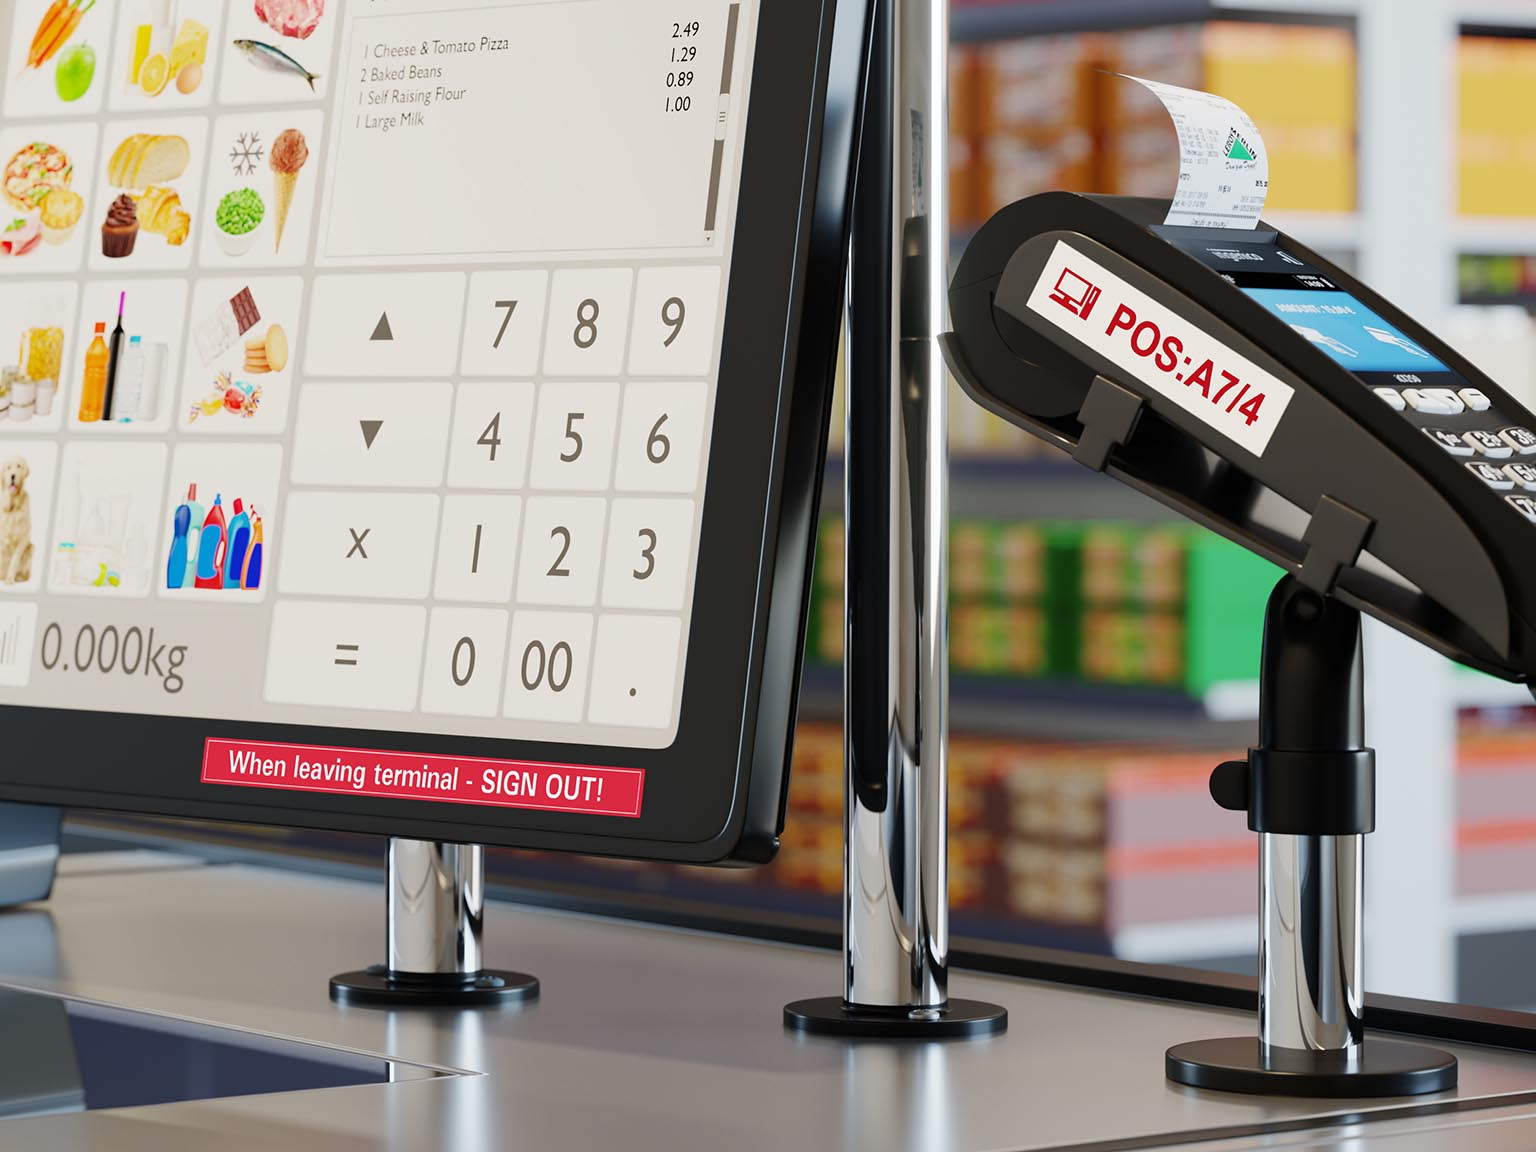 Durable Brother P-touch TZe labels on POS point-of-sale equipment in retail store